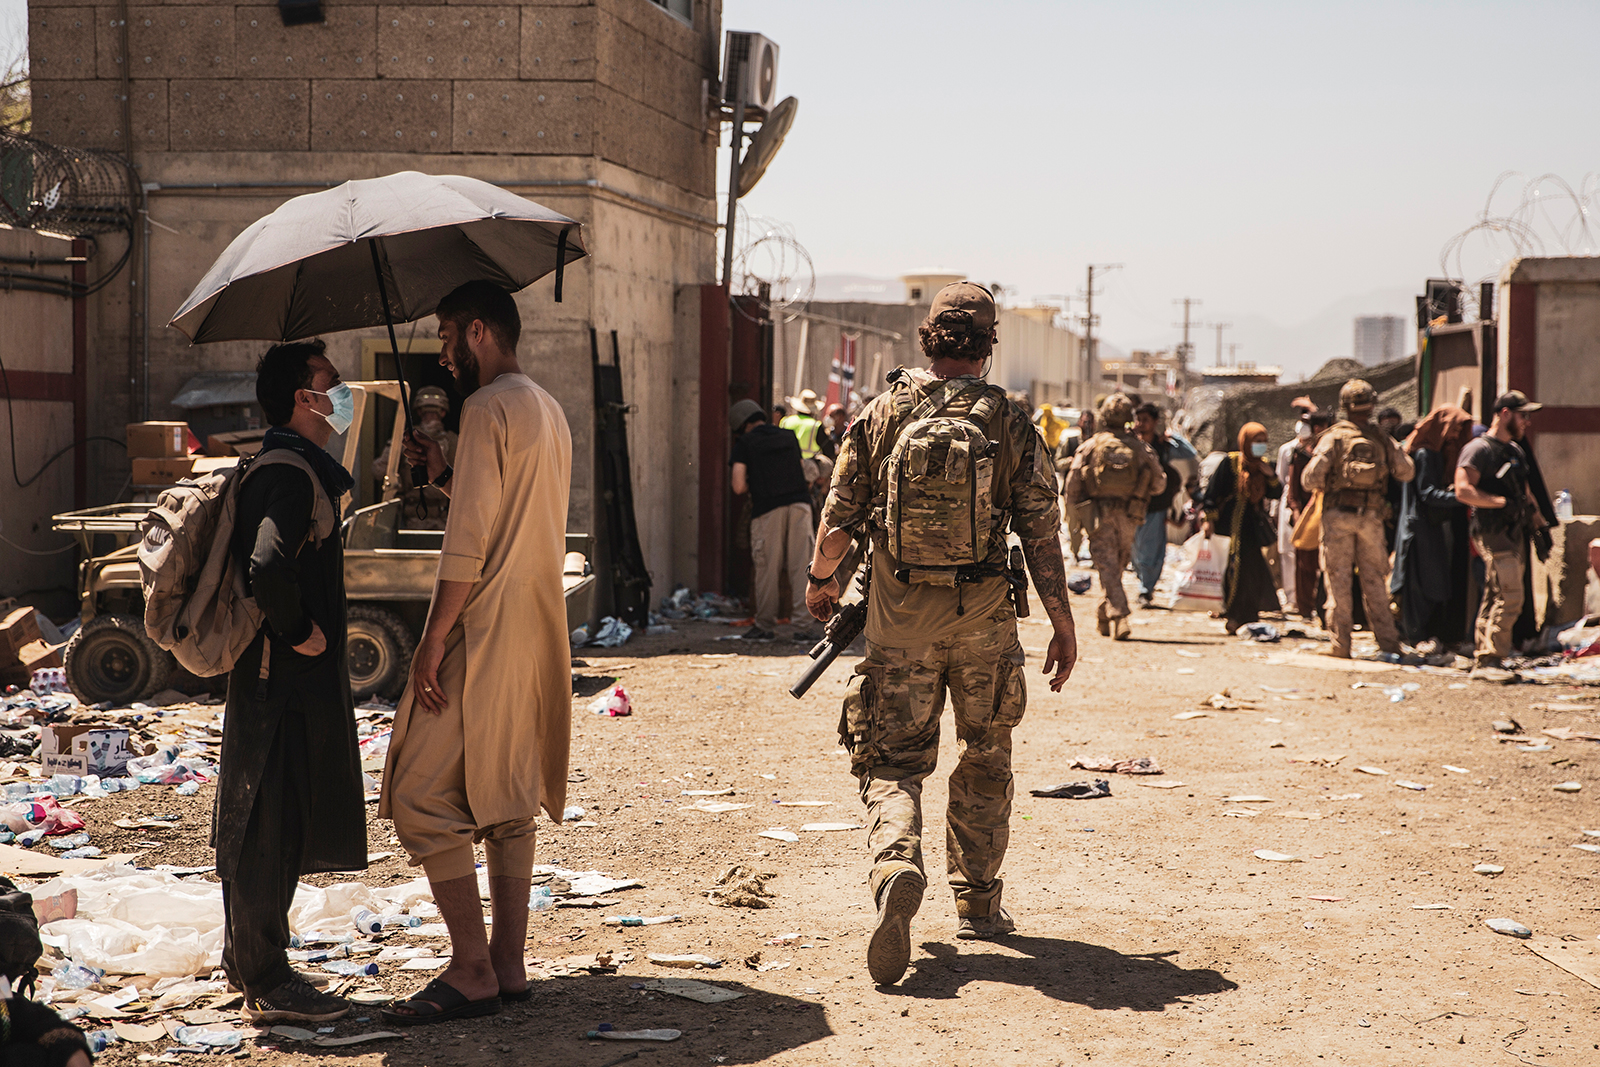 In this image provided by the U.S. Marine Corps, a Canadian coalition forces member walks through an evacuation control checkpoint during ongoing evacuations at Hamid Karzai International Airport in Kabul on Tuesday, August 24.